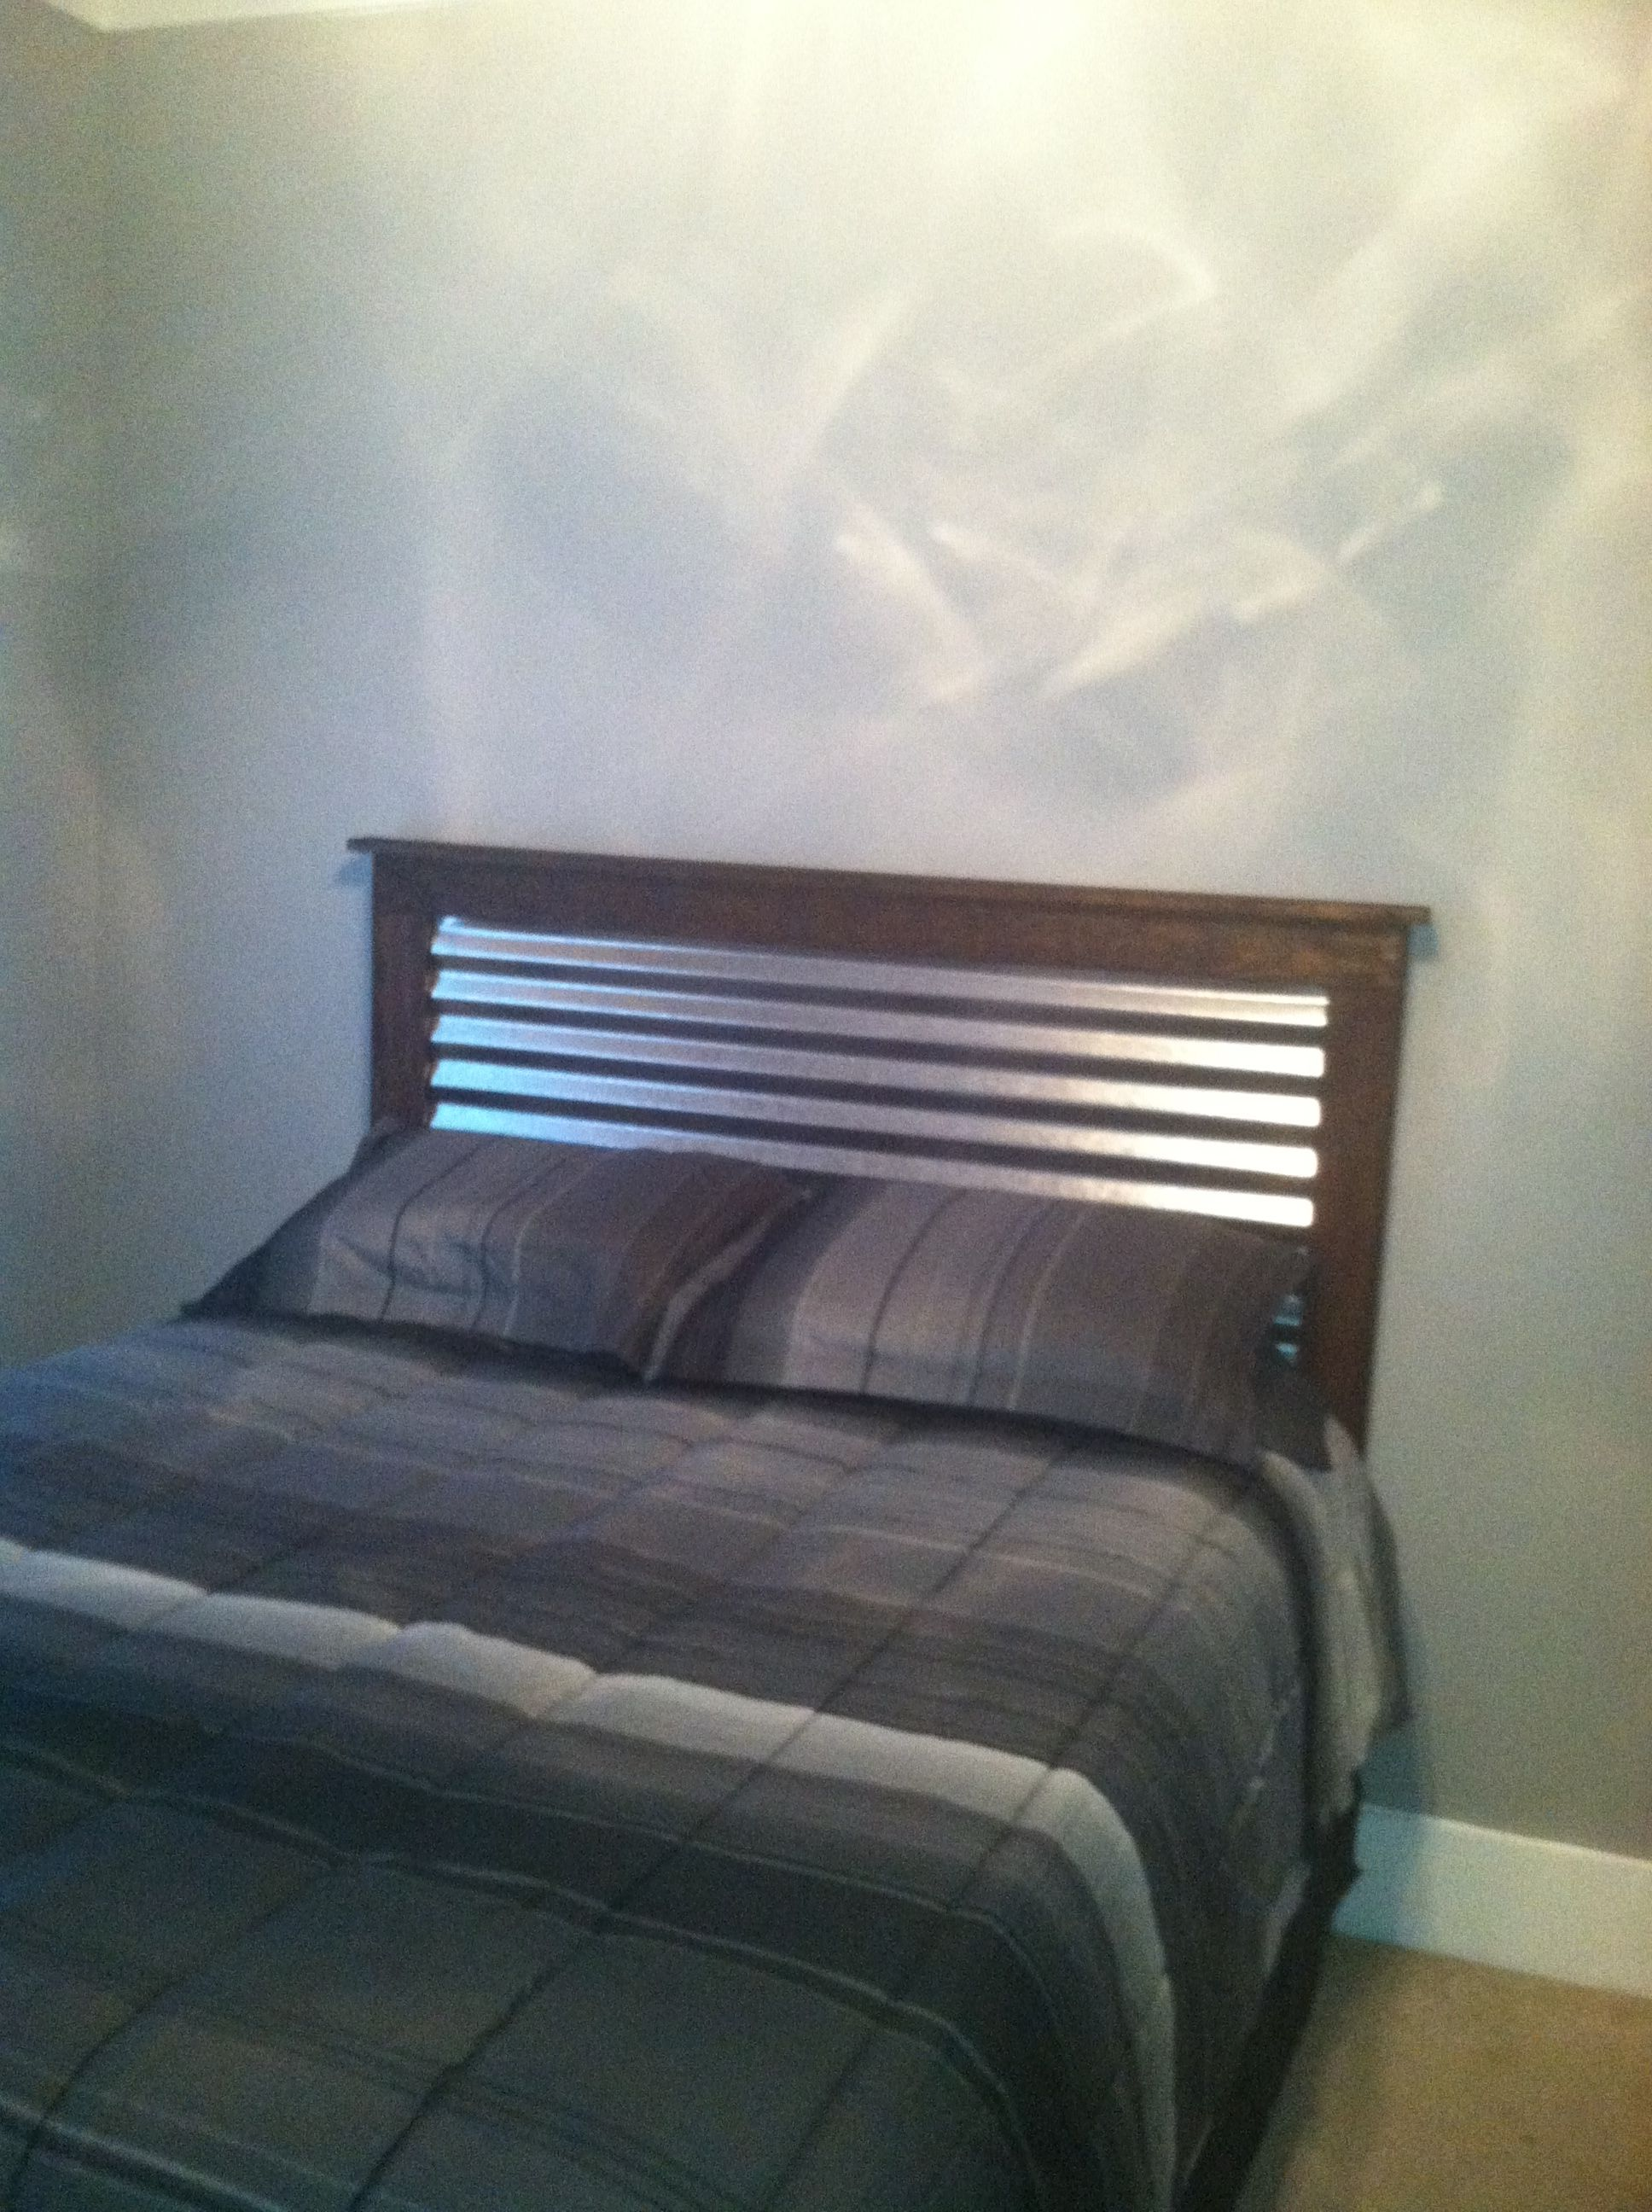 Corrugated Metal On Wood Headboard